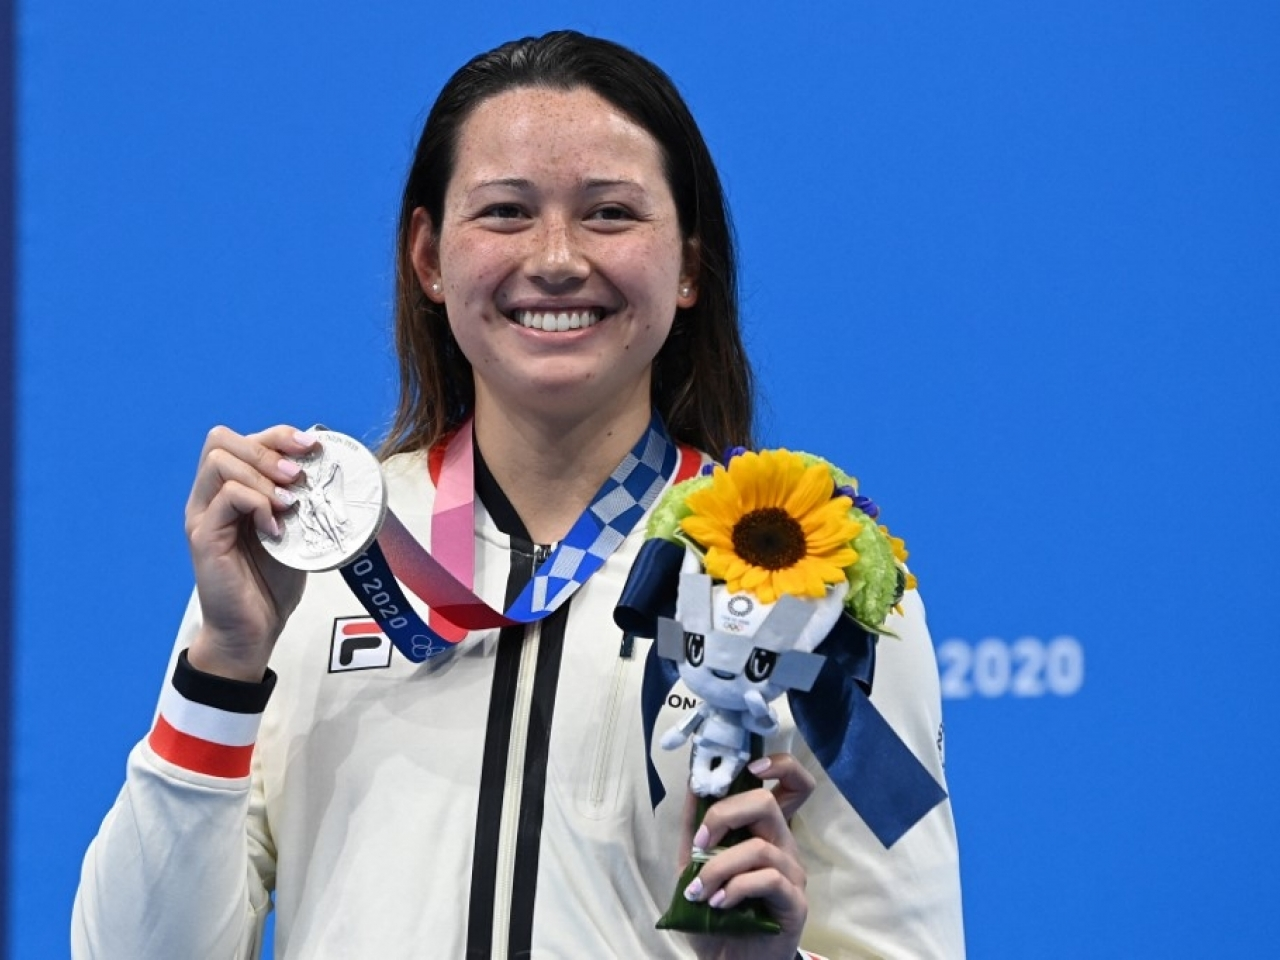 Siobhan Haughey wins her second silver medal in the 100m freestyle, following her success in the 200m event on Wednesday. Photo: AFP